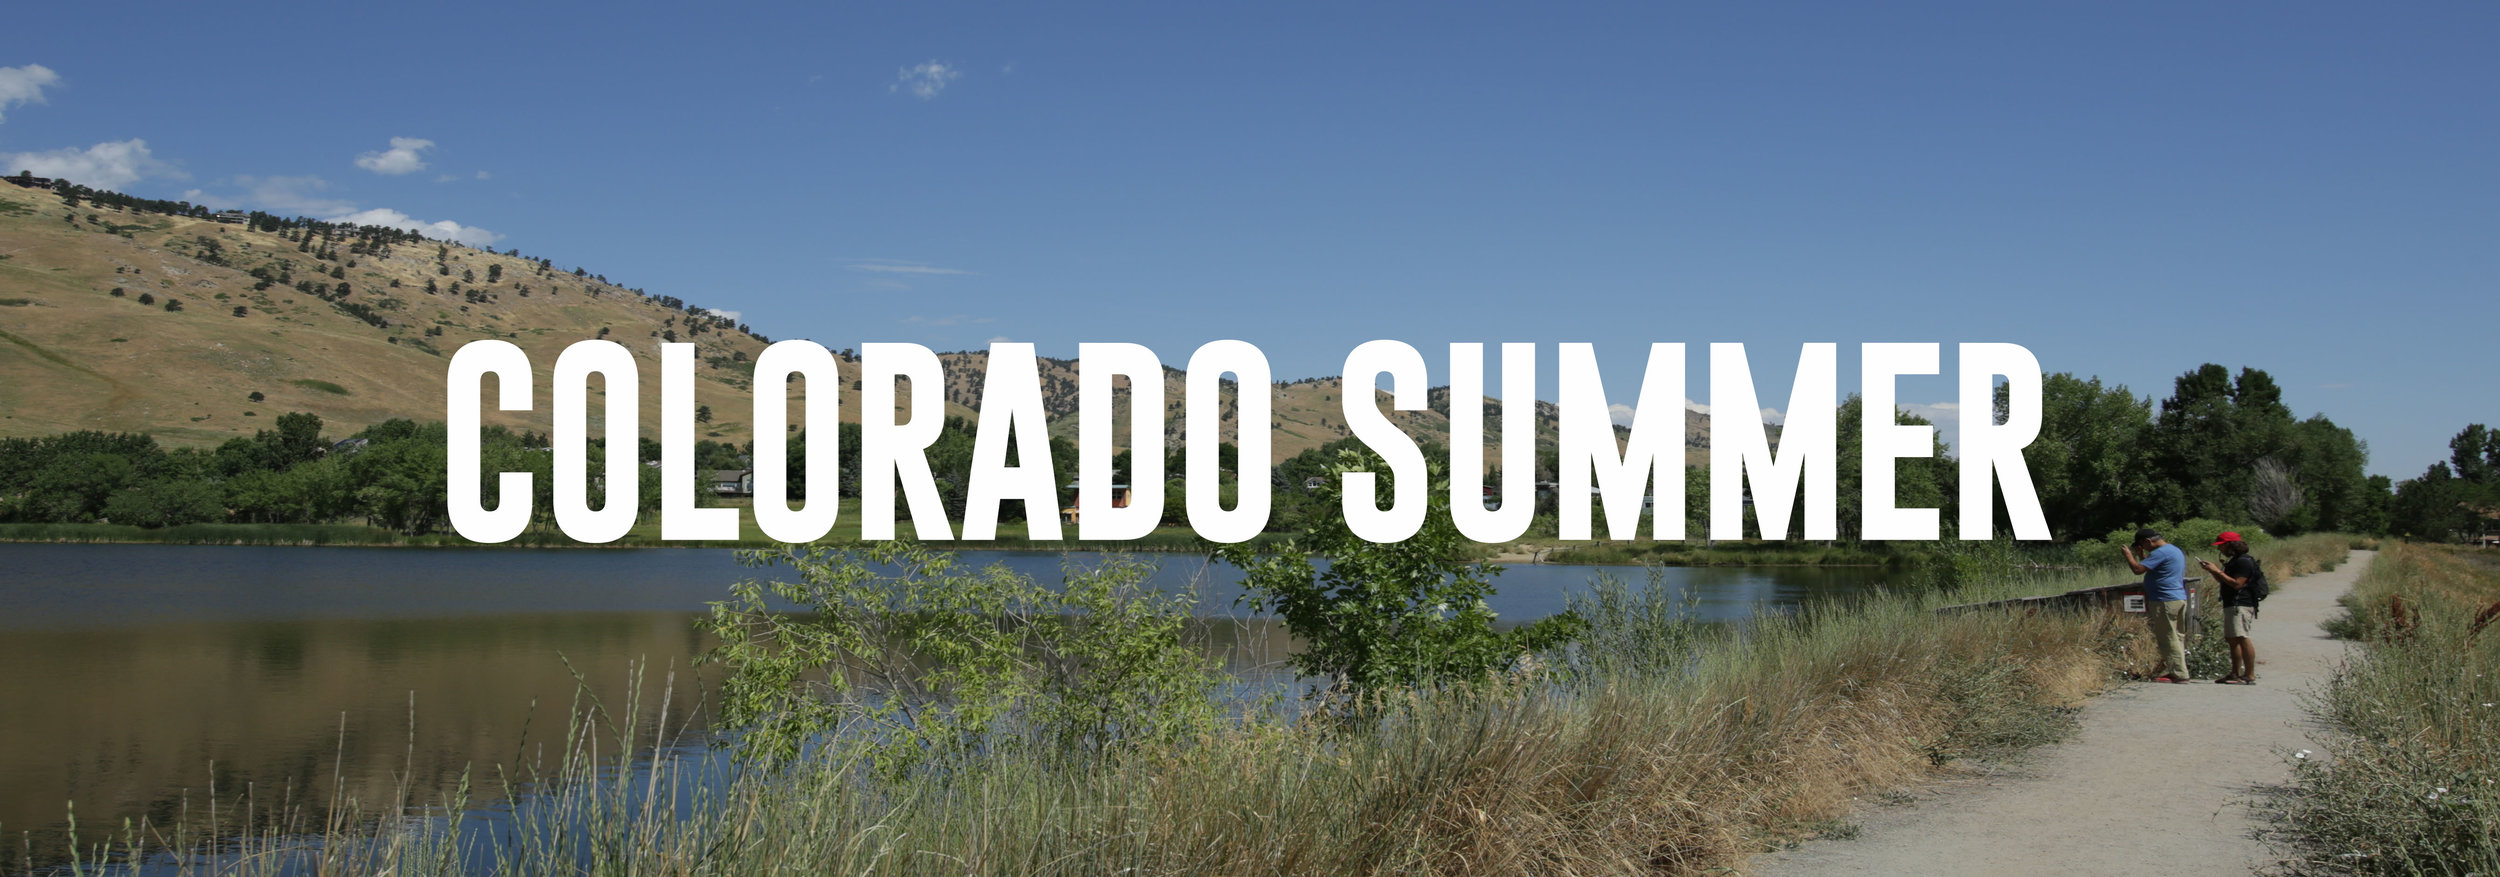 colorado summer__Titles_Cover_TEMPLATE-01.jpg